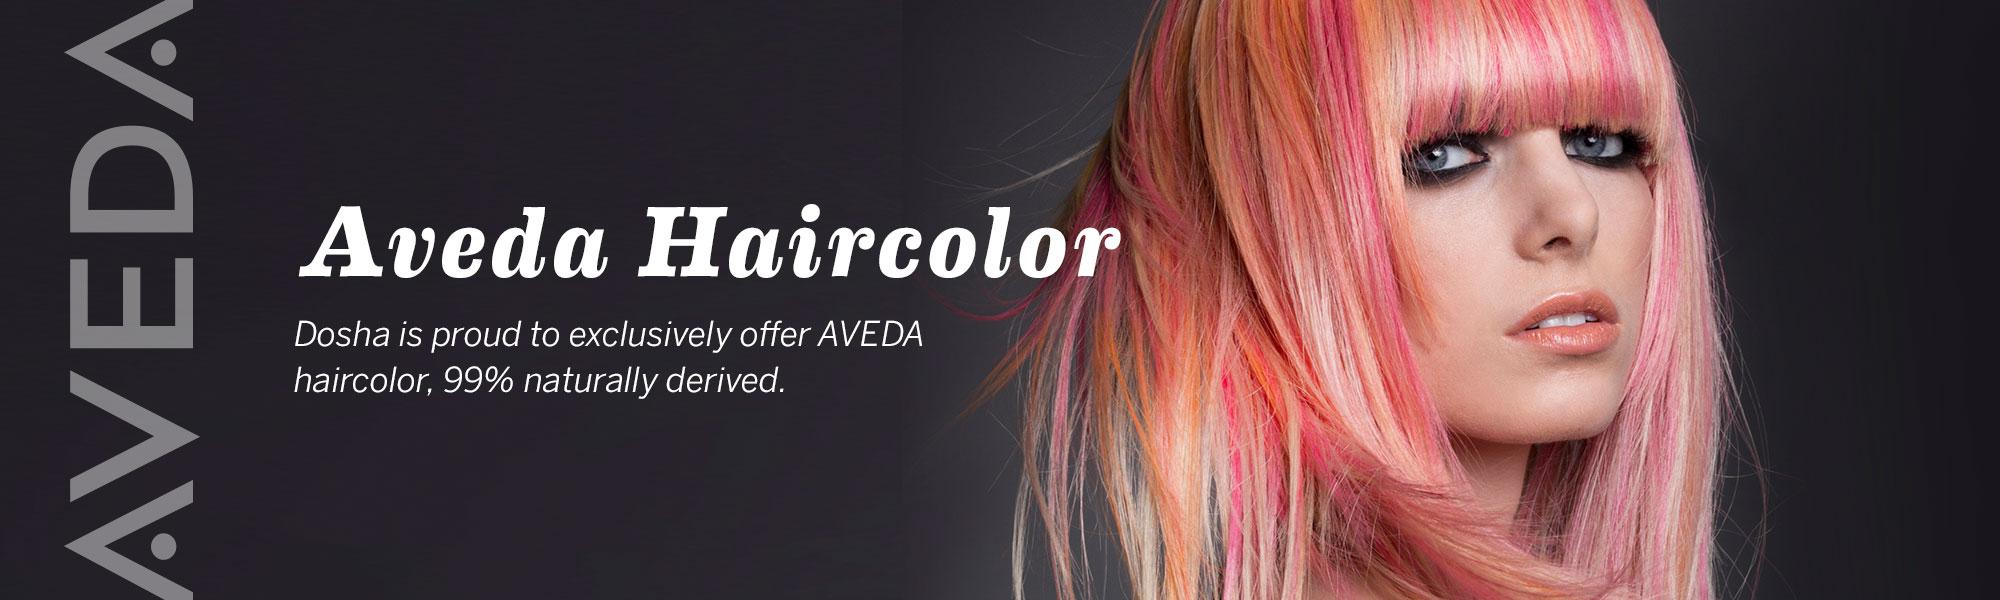 Dosha is proud to exclusively offer Aveda haircolor